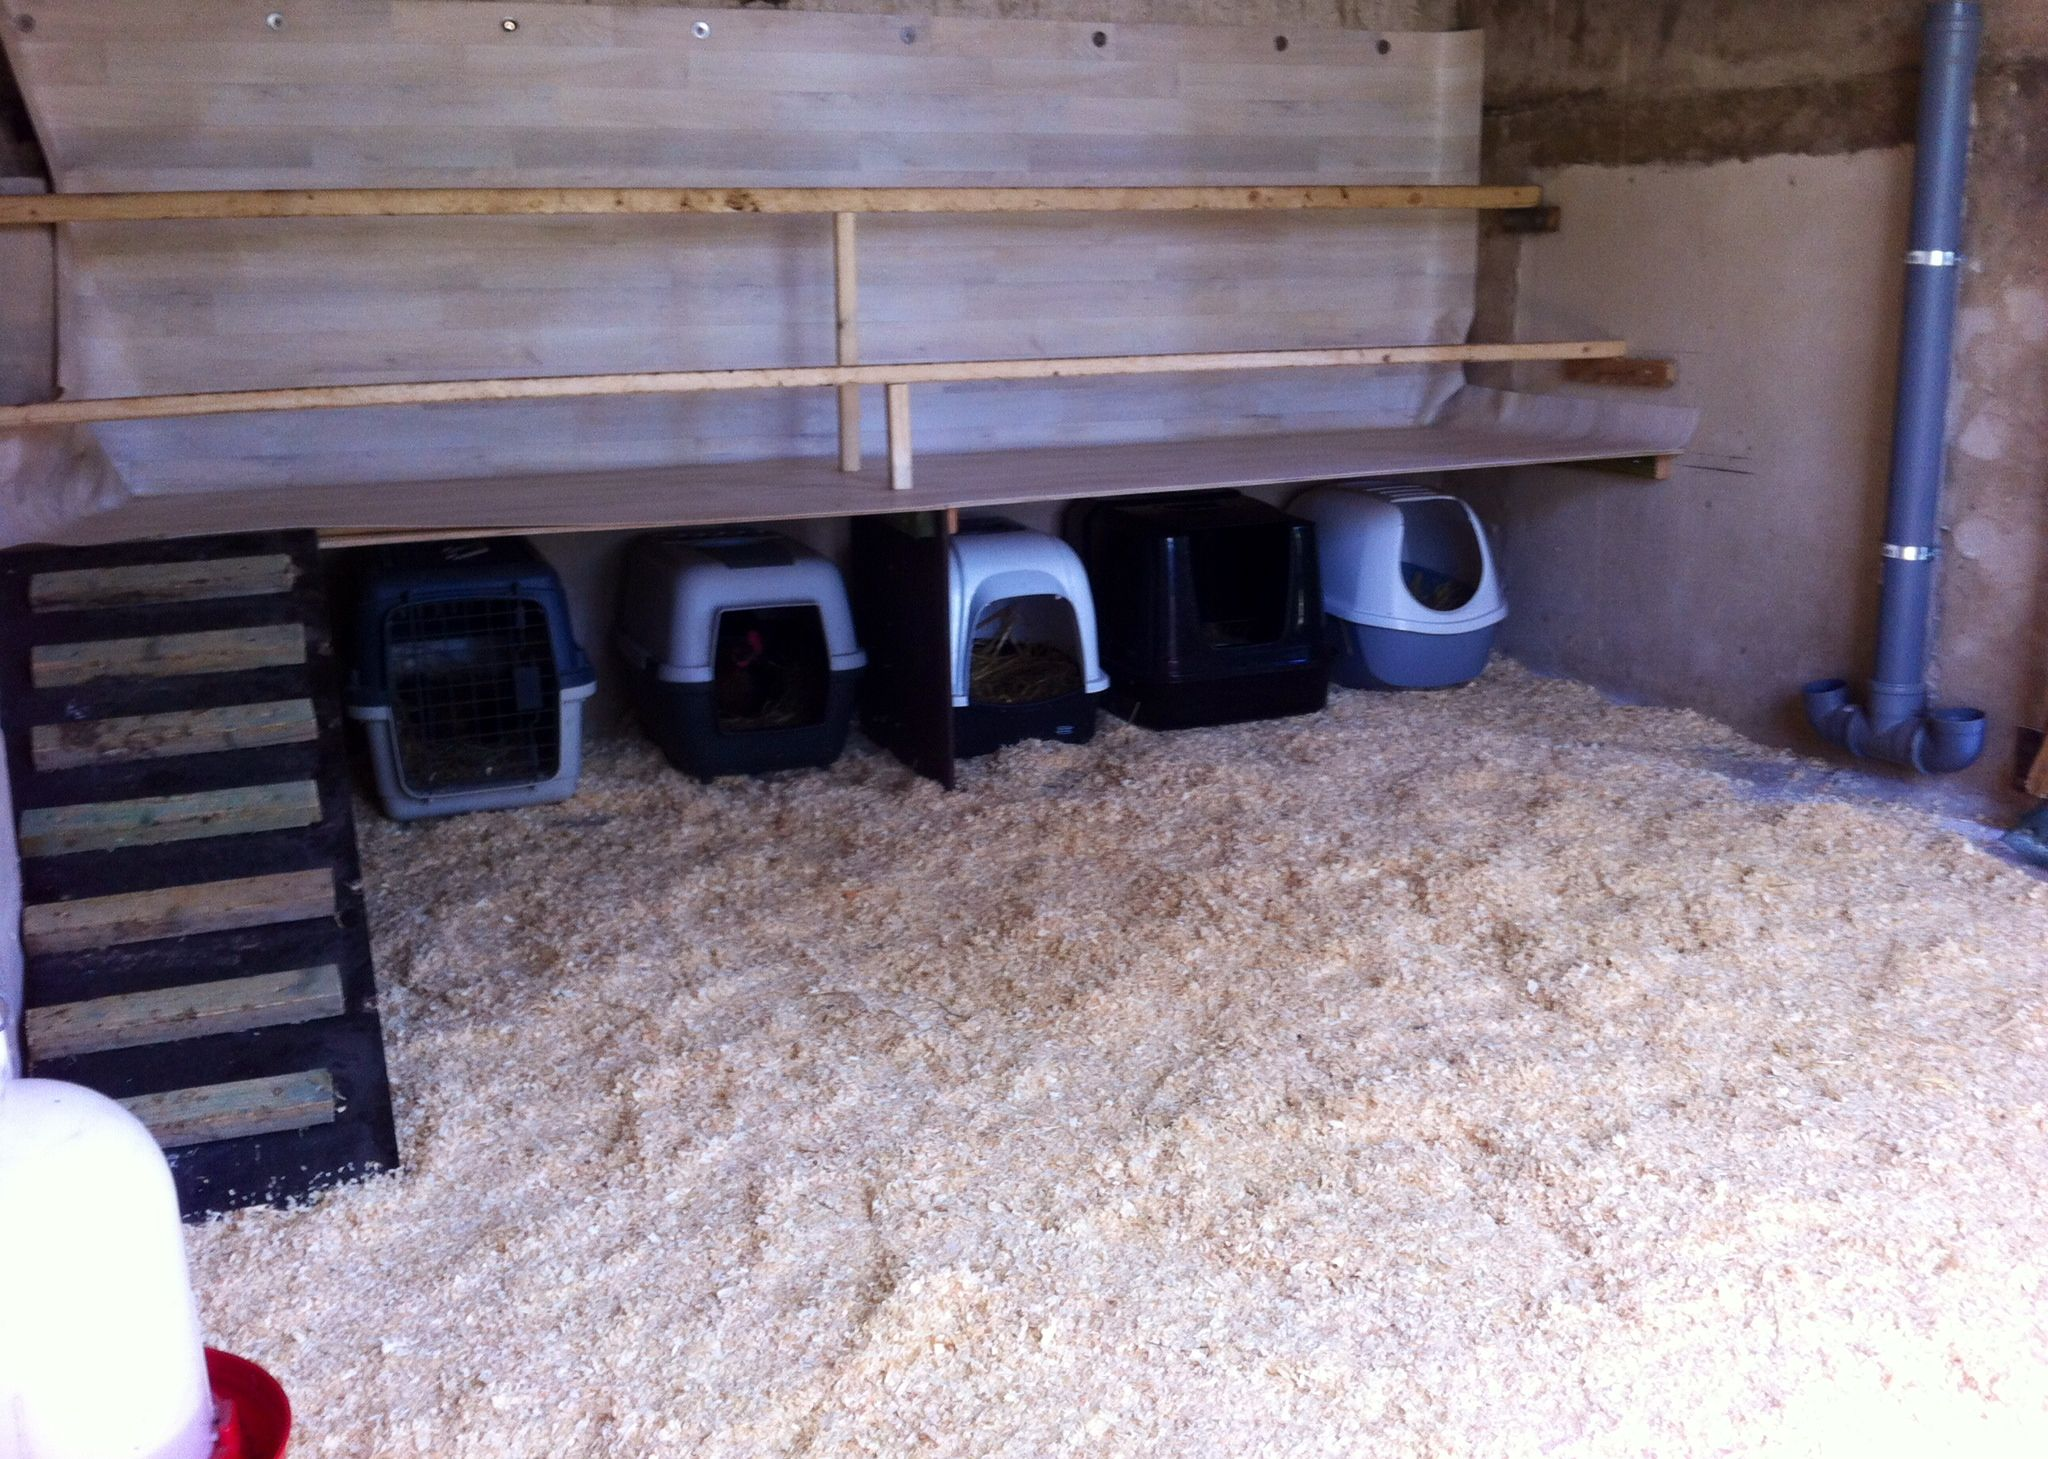 My Easy To Clean Chicken Coop Vinyl Flooring Underneath The Chicken Roosts Cat Litter Boxes Serving As Nest Best Chicken Coop Chicken Roost Easy Chicken Coop